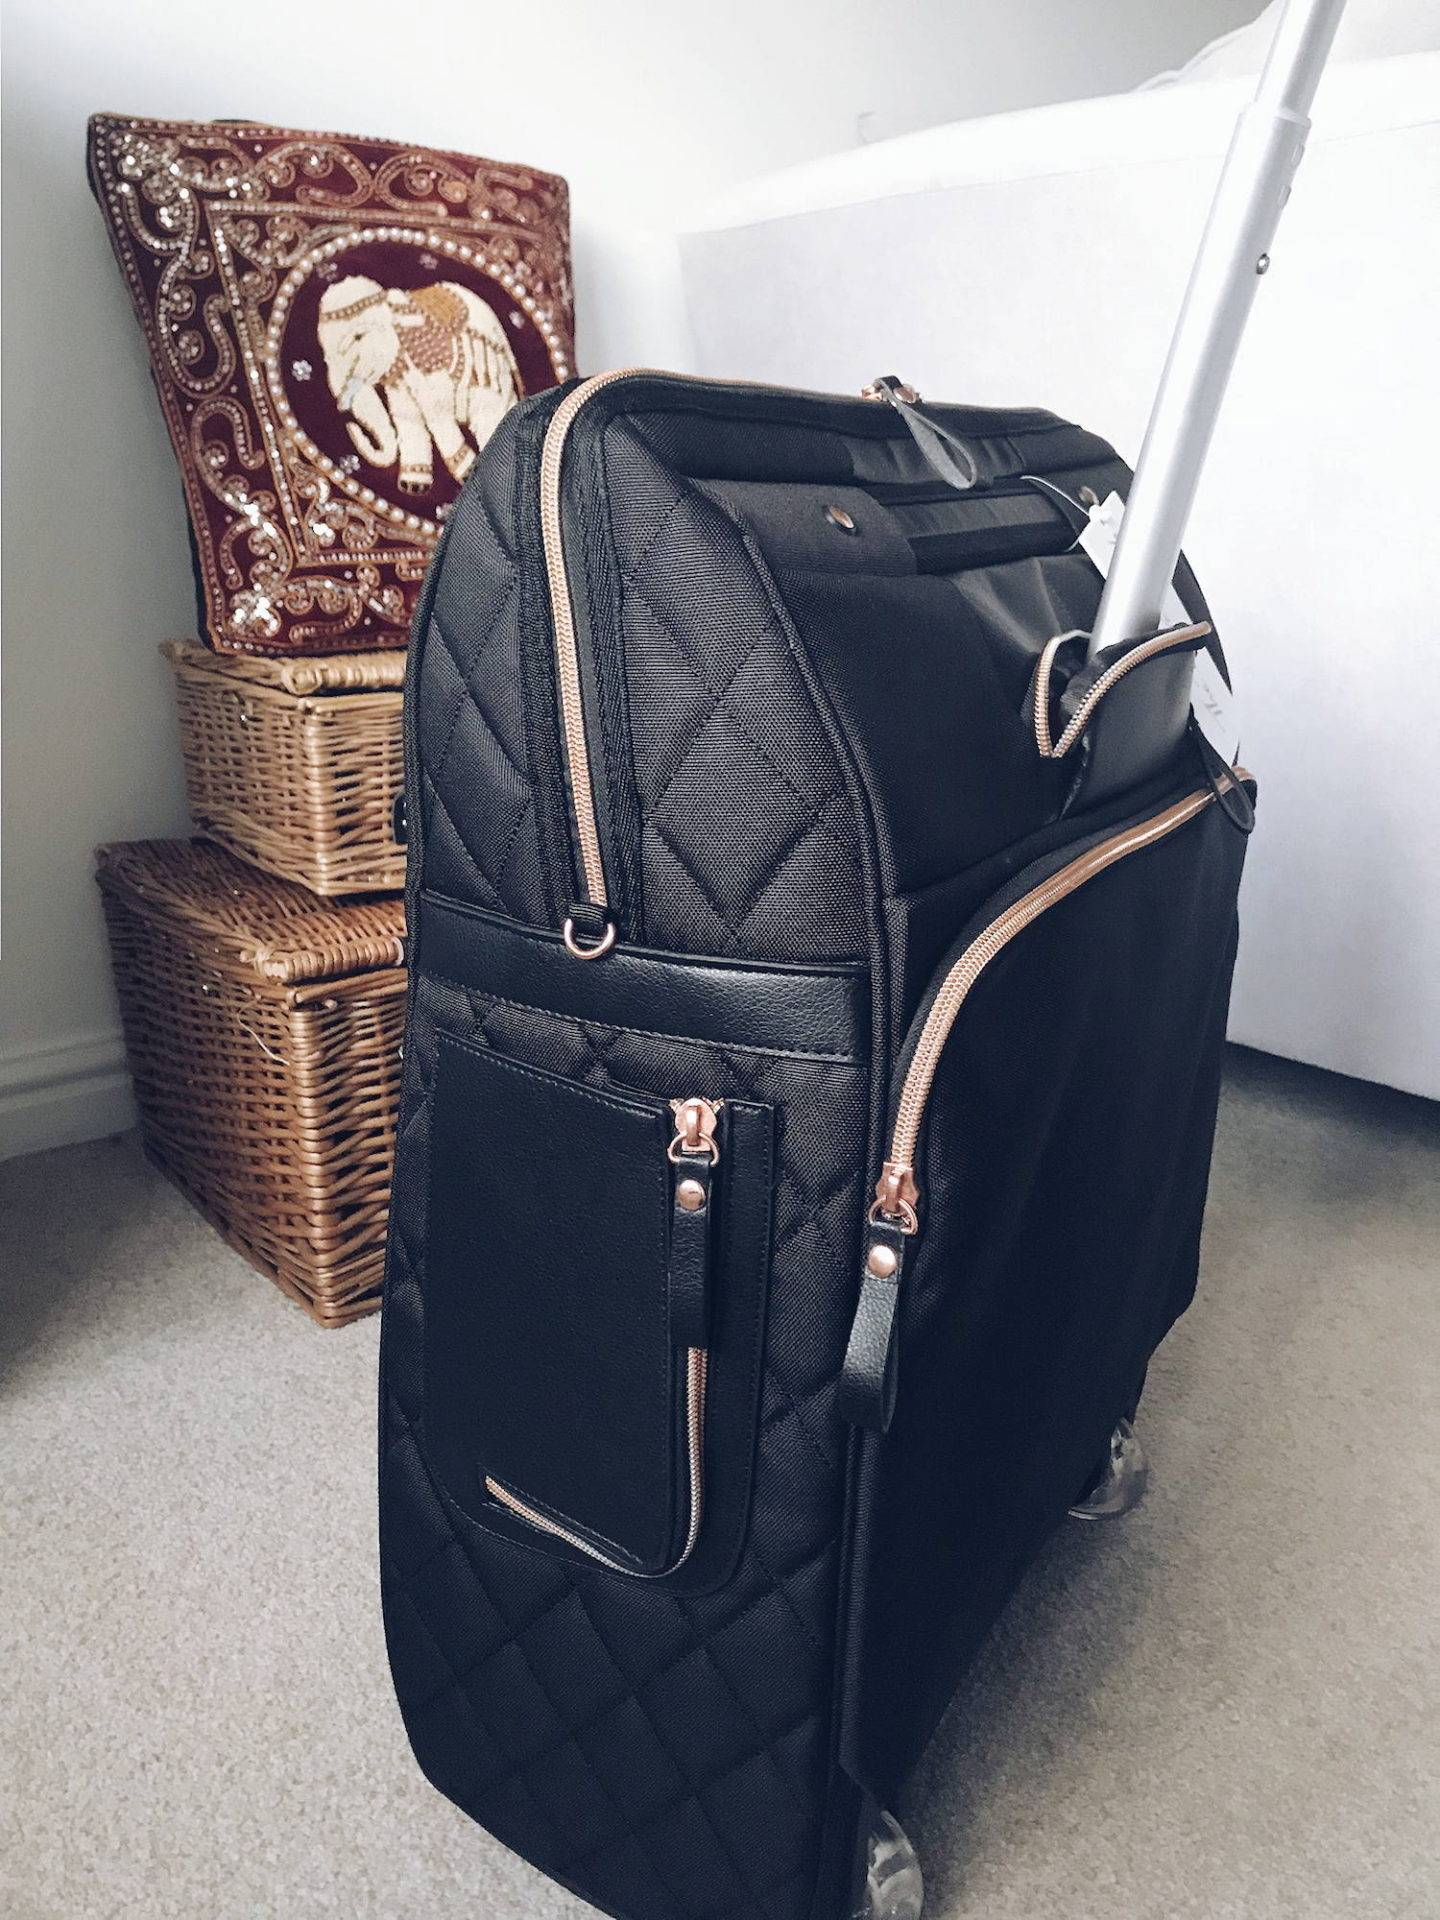 Large ladies carry-on cabin bag for frequent travellers